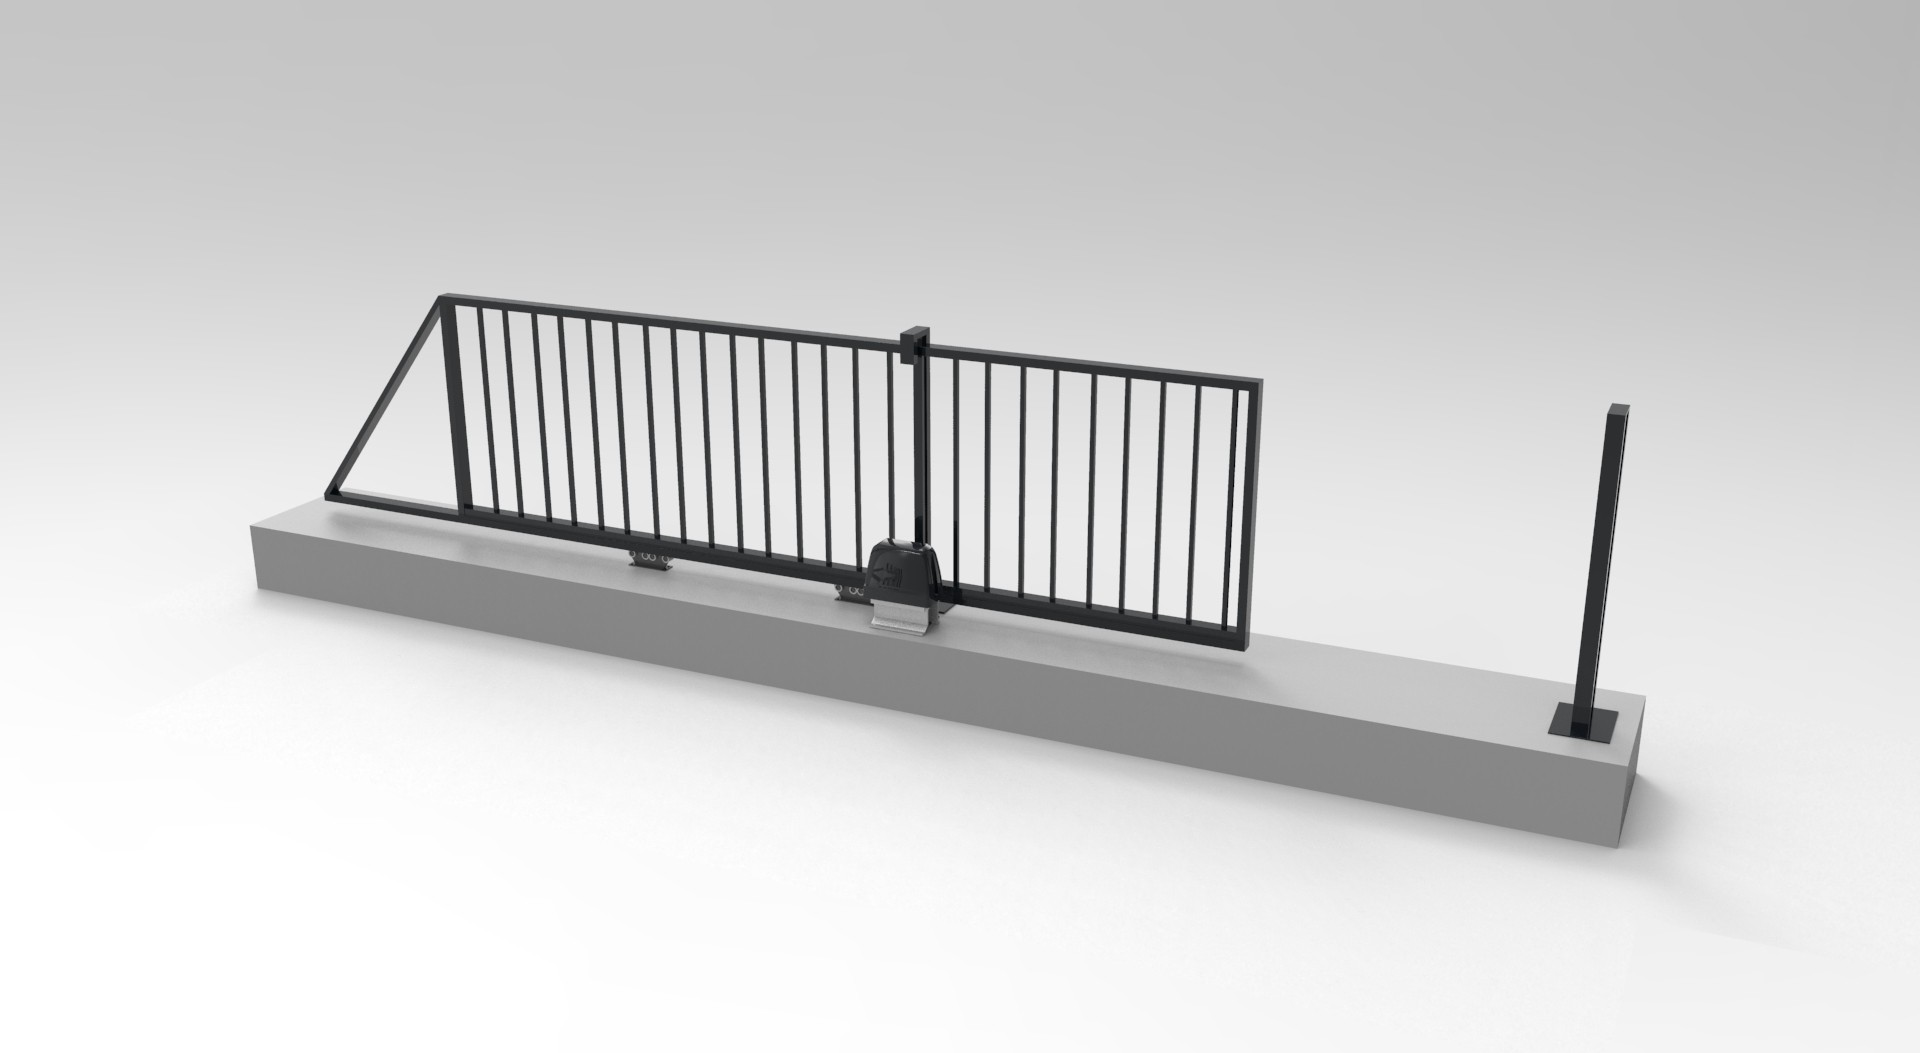 3d Gate imgaes for our web site